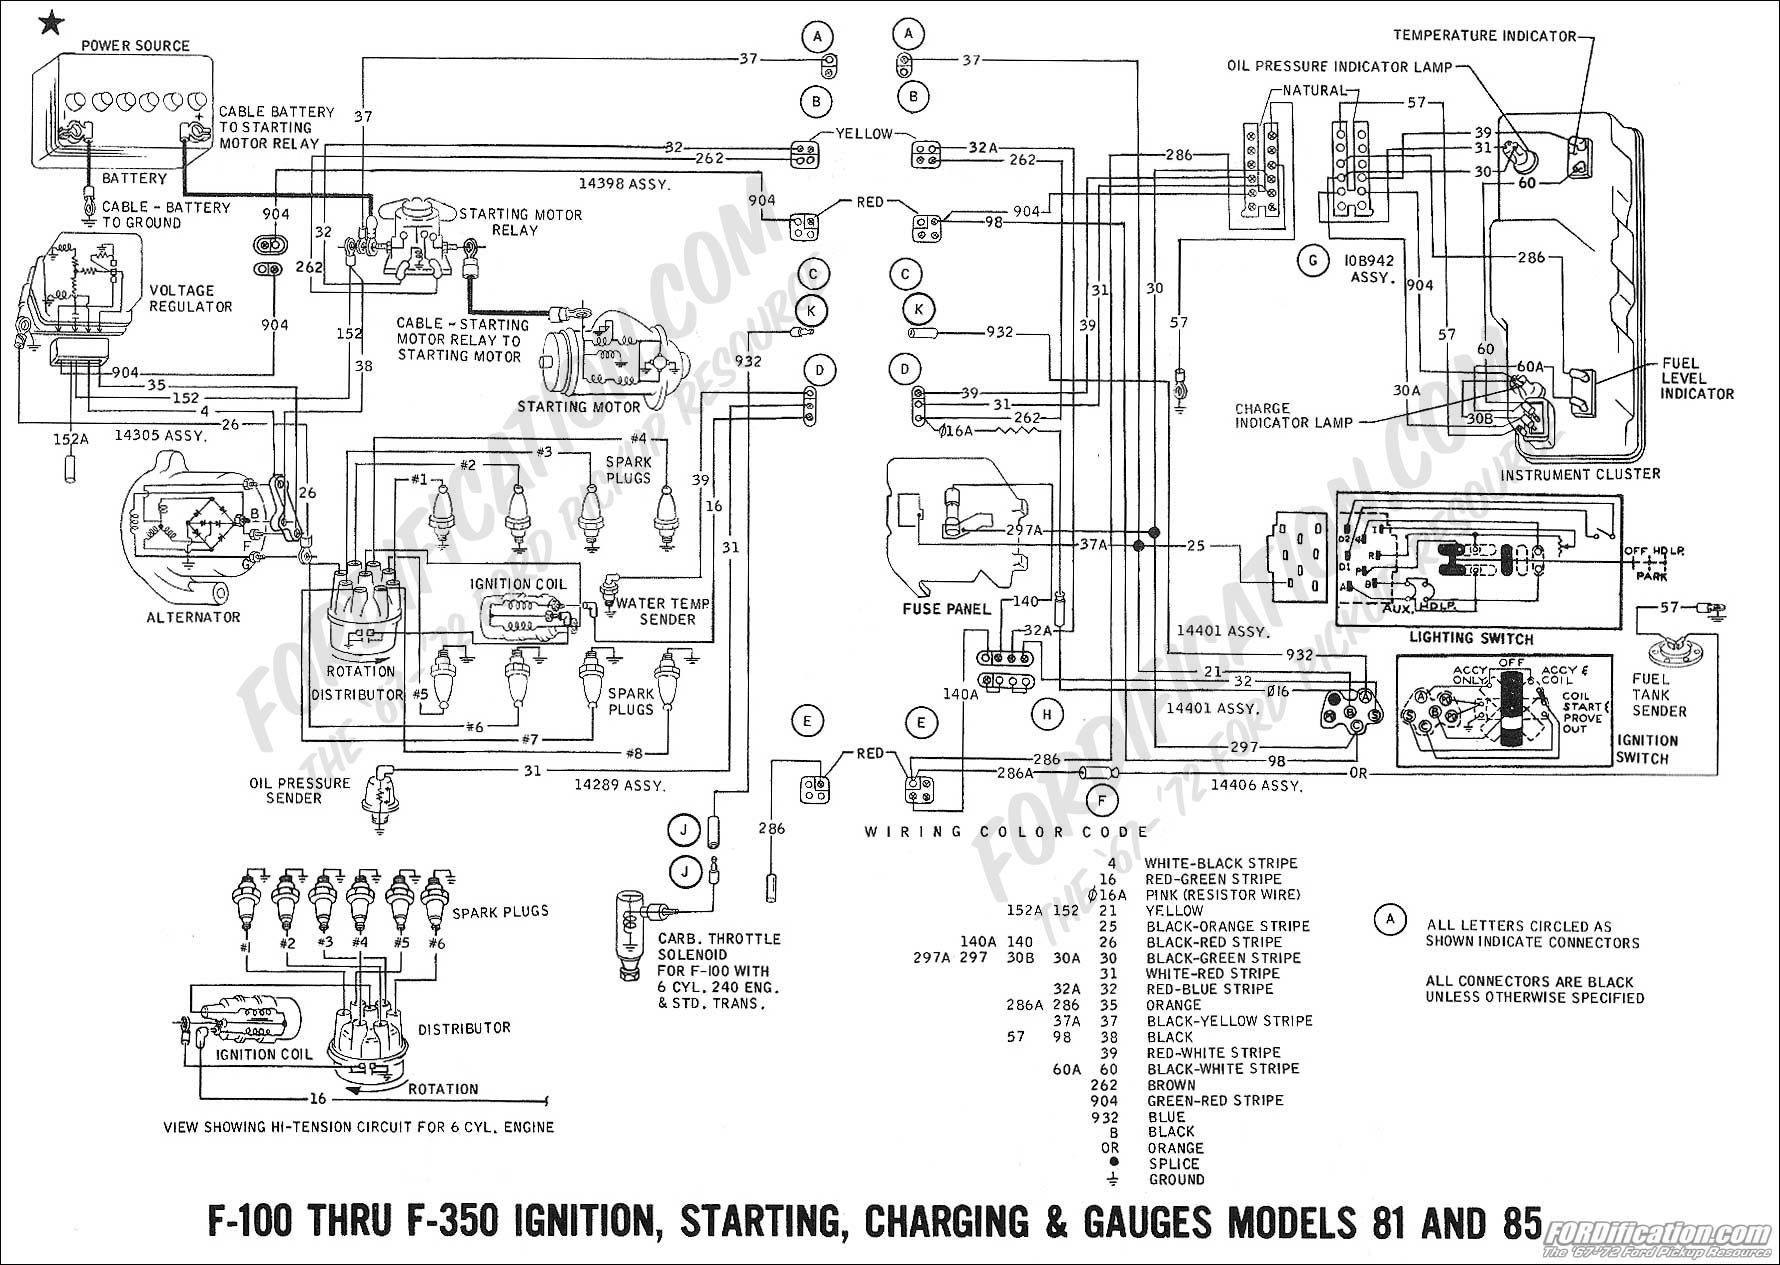 hight resolution of 1969 f 100 thru f 350 ignition charging starting and gauges 02